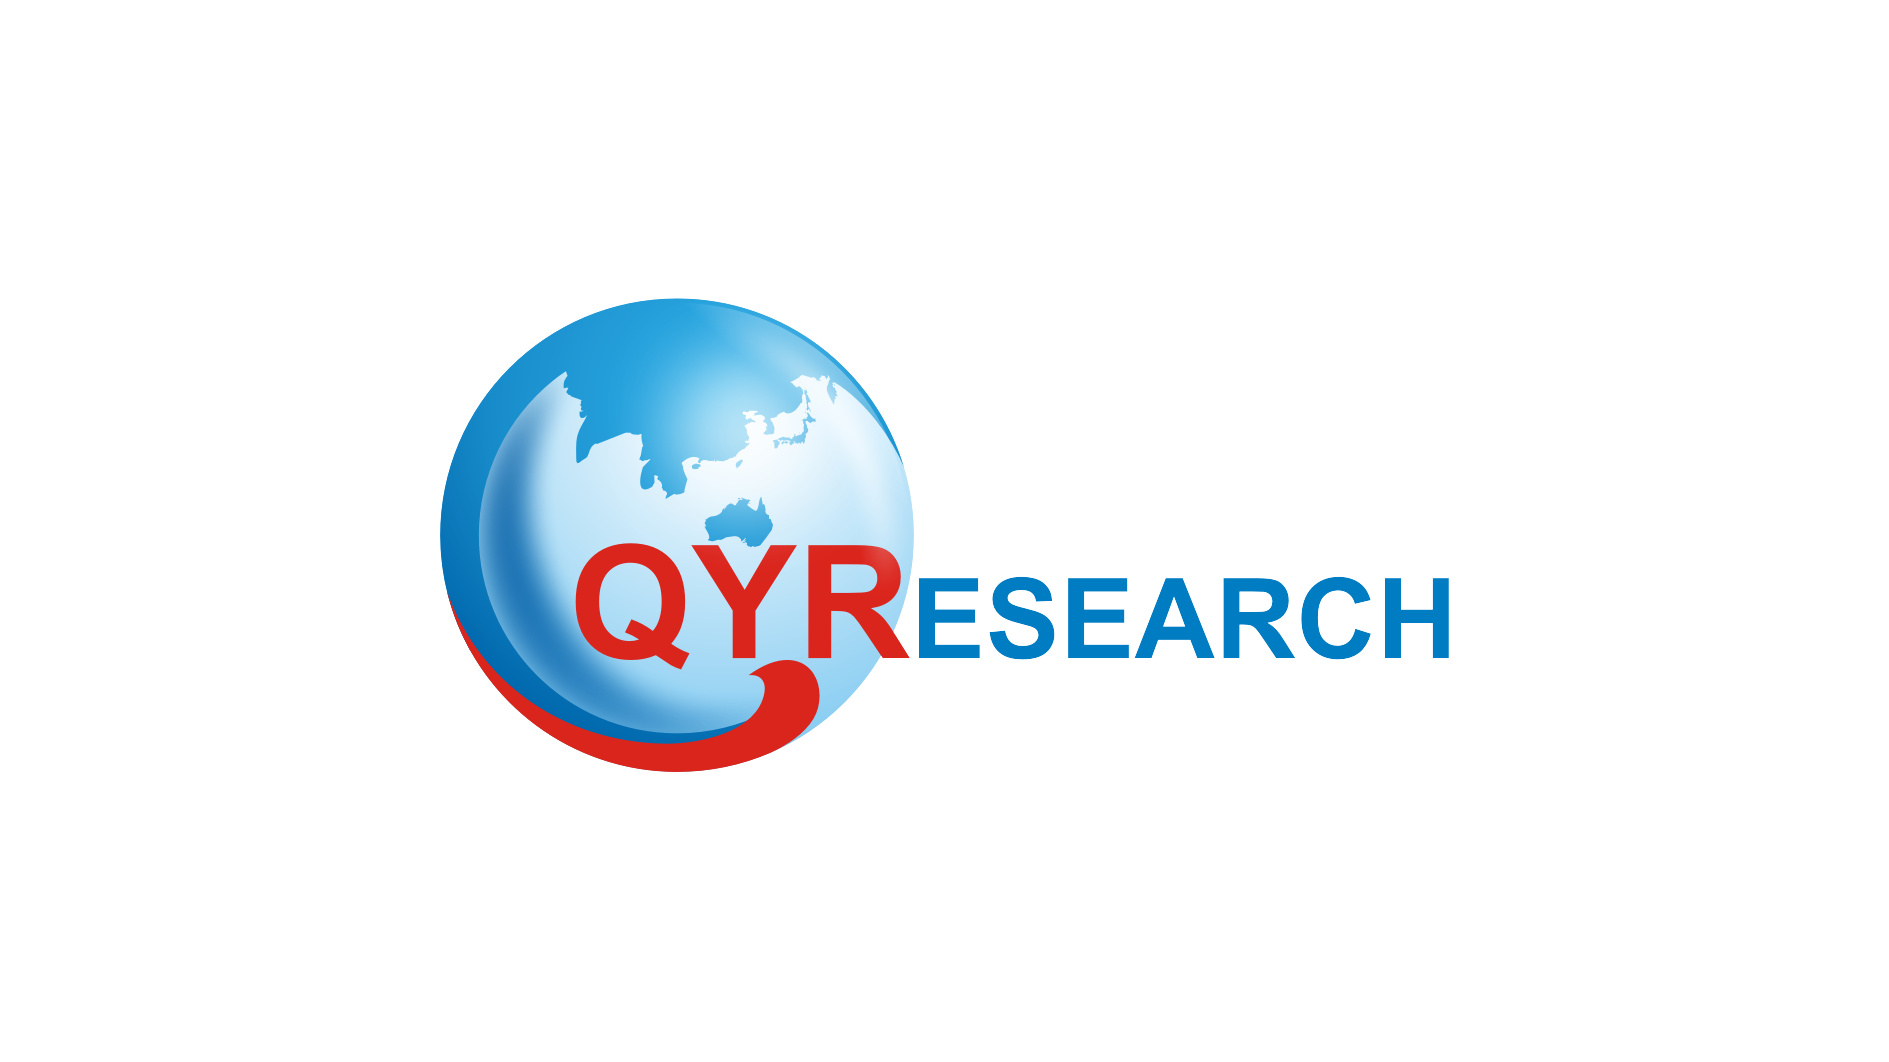 Cardiac Resynchronization Therapy (CRT) Devices Market Report 2017